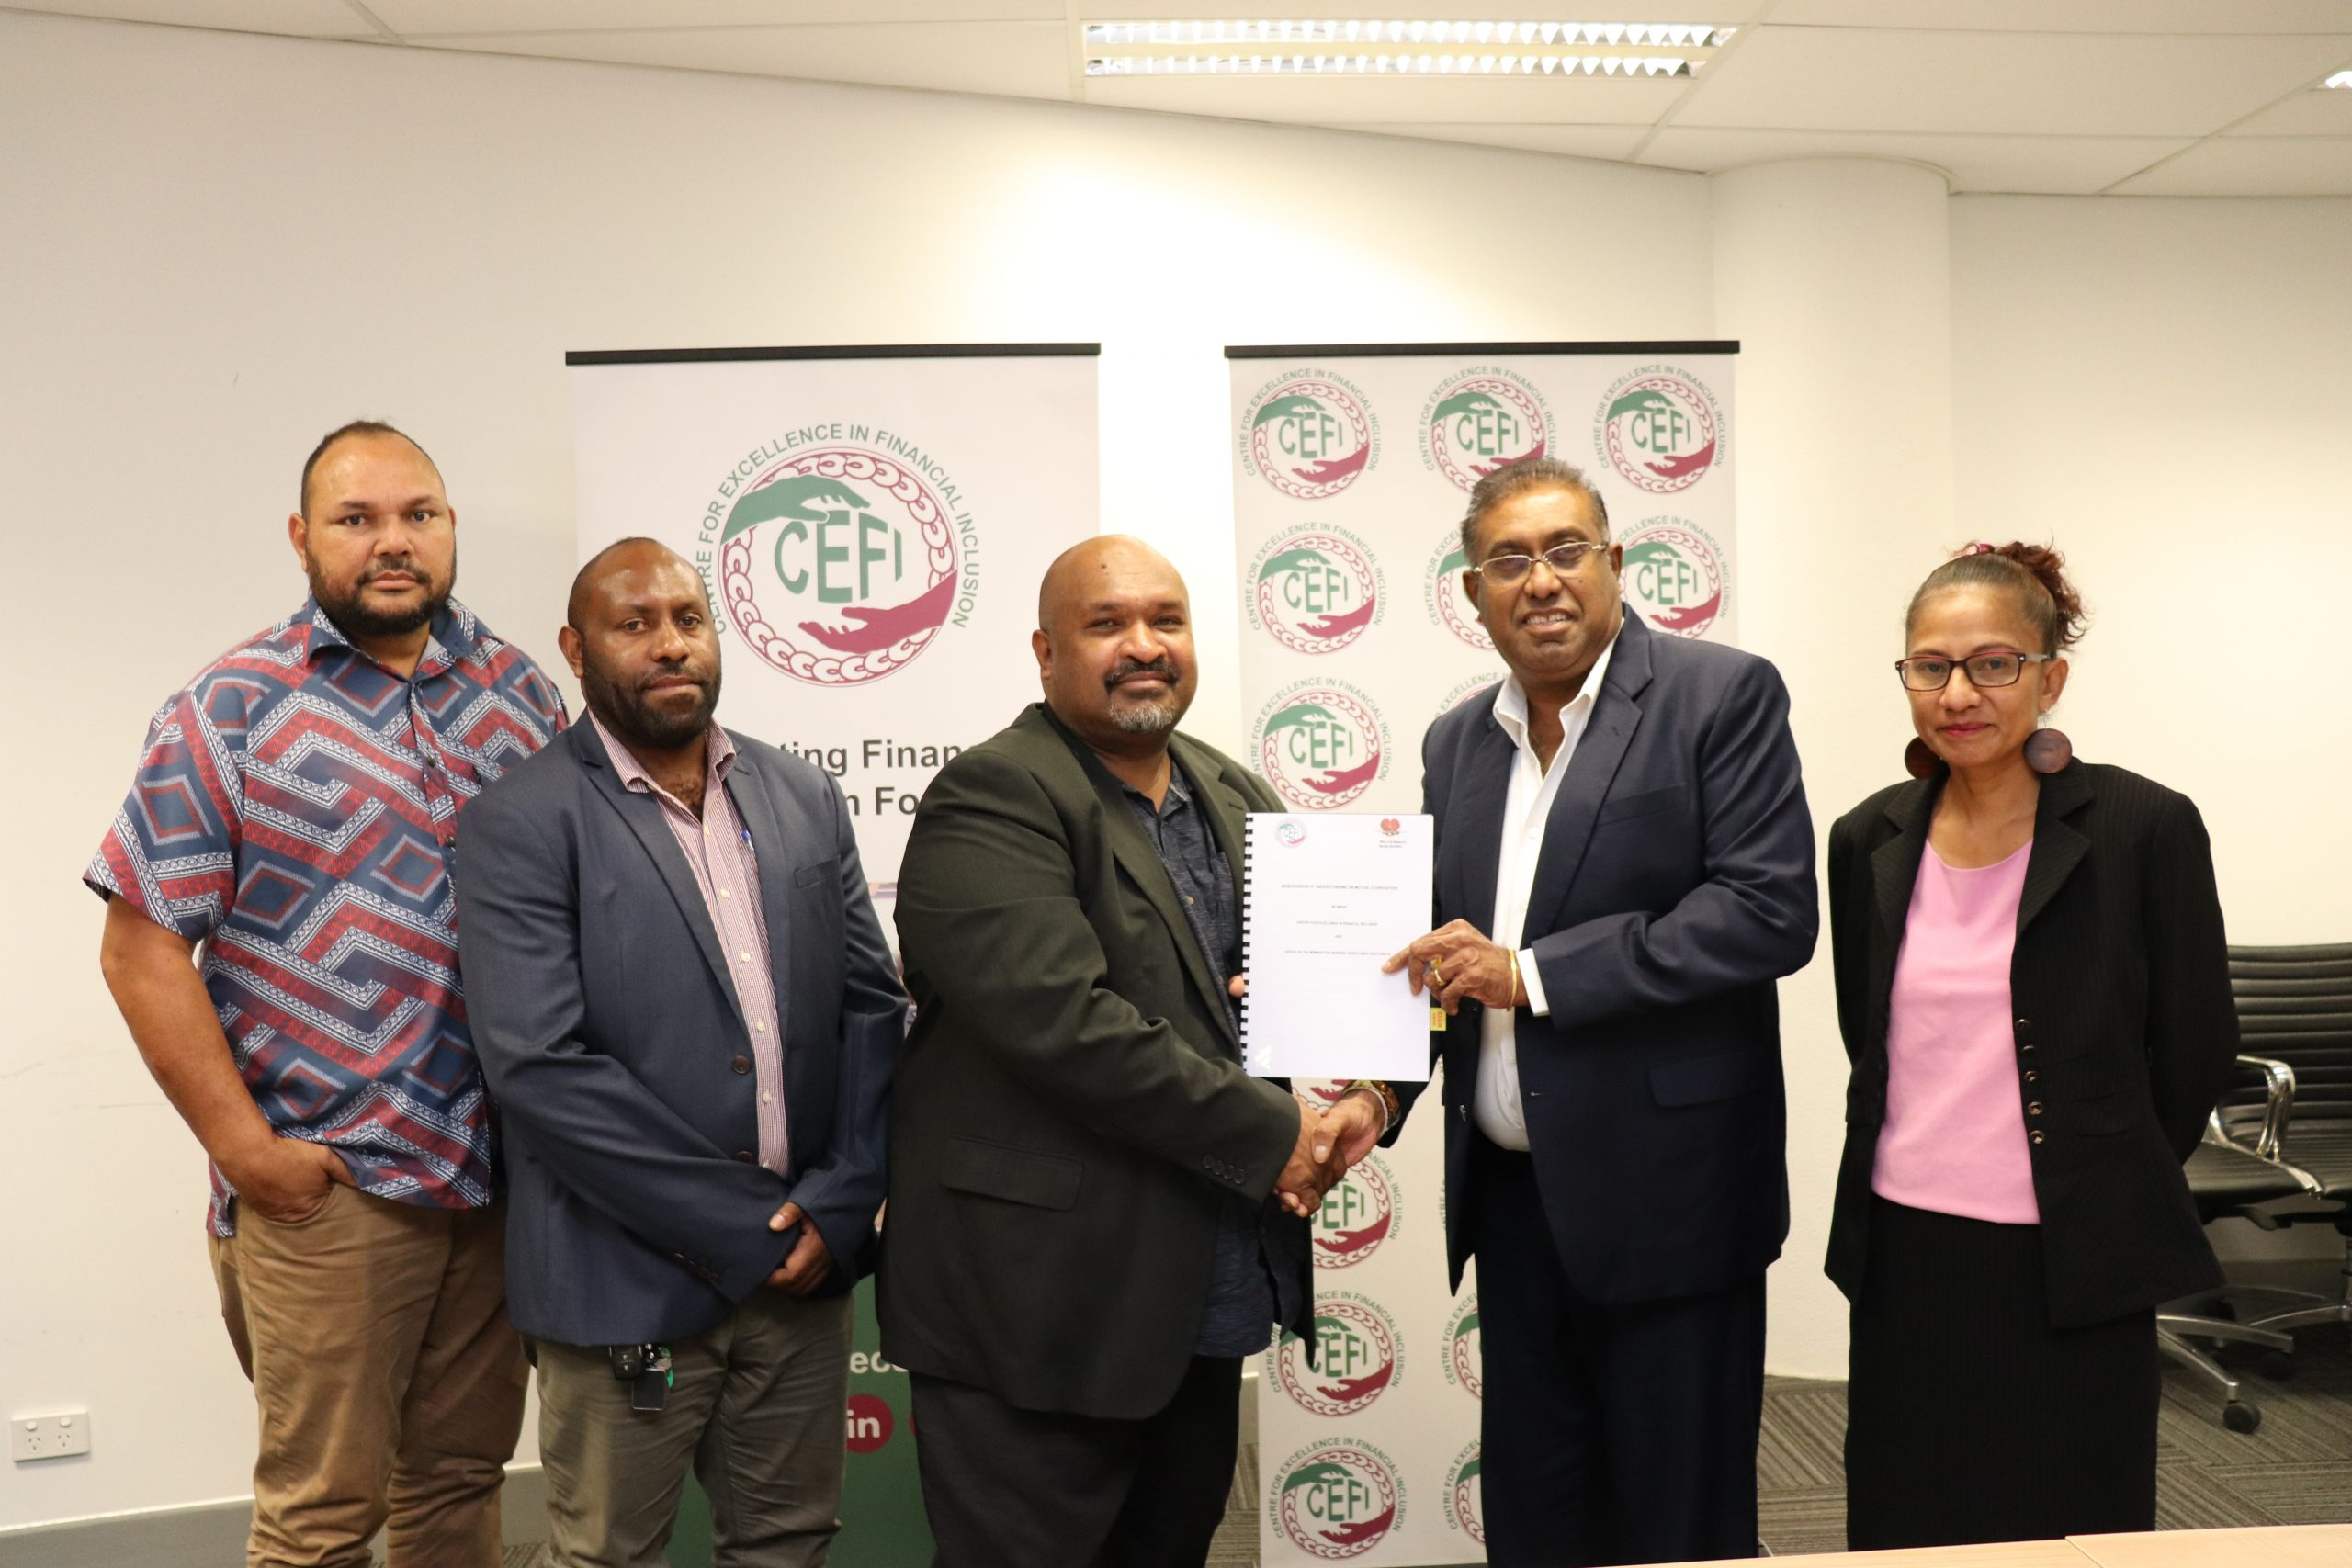 Member for Port Moresby North West LOhia Boe Samuel (left) and CEFI Executive Director Saliya Ranasinghe shaking hands to confirm both parties partnership in working together to deliver financial inclusion activities in the Port Moresby North West Electorate.